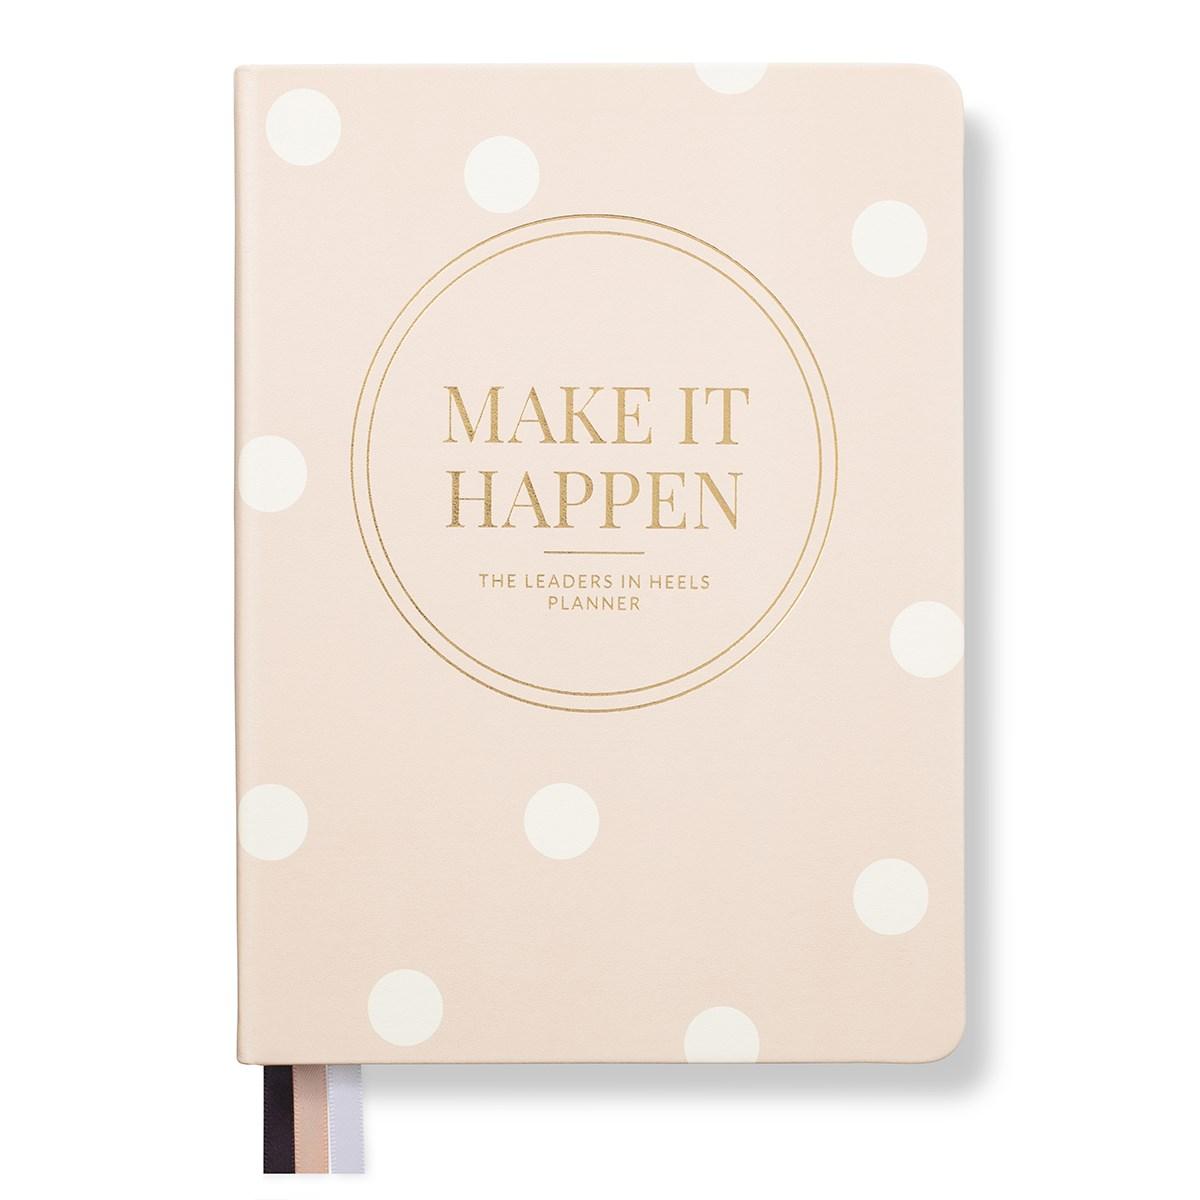 Leaders in Heels Planner – Make It Happen – Spotted Pink